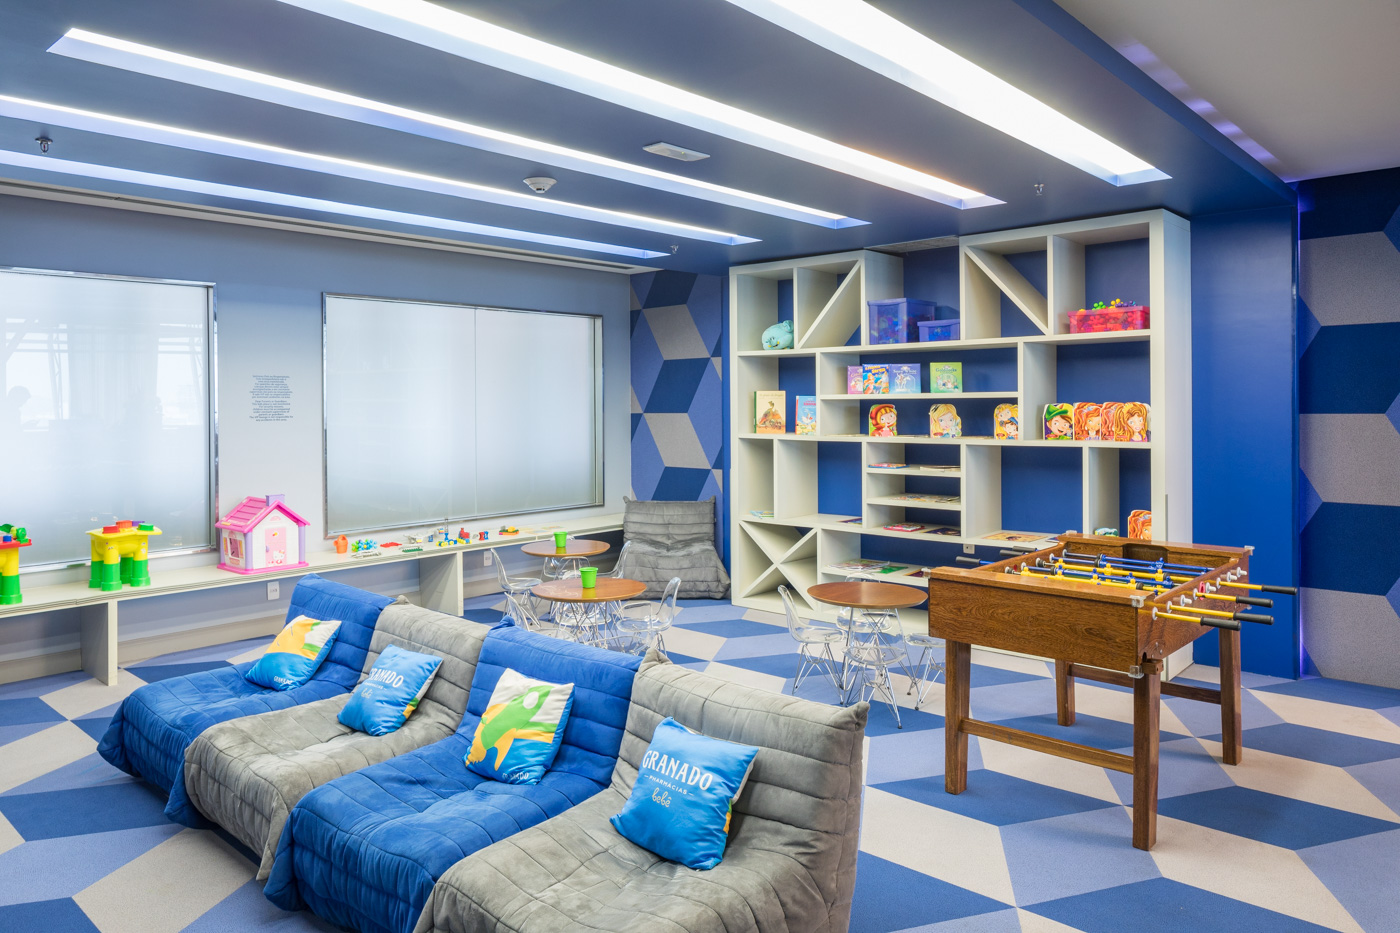 The Children's area at Aeroportos VIP Club is fun and ultra-modern